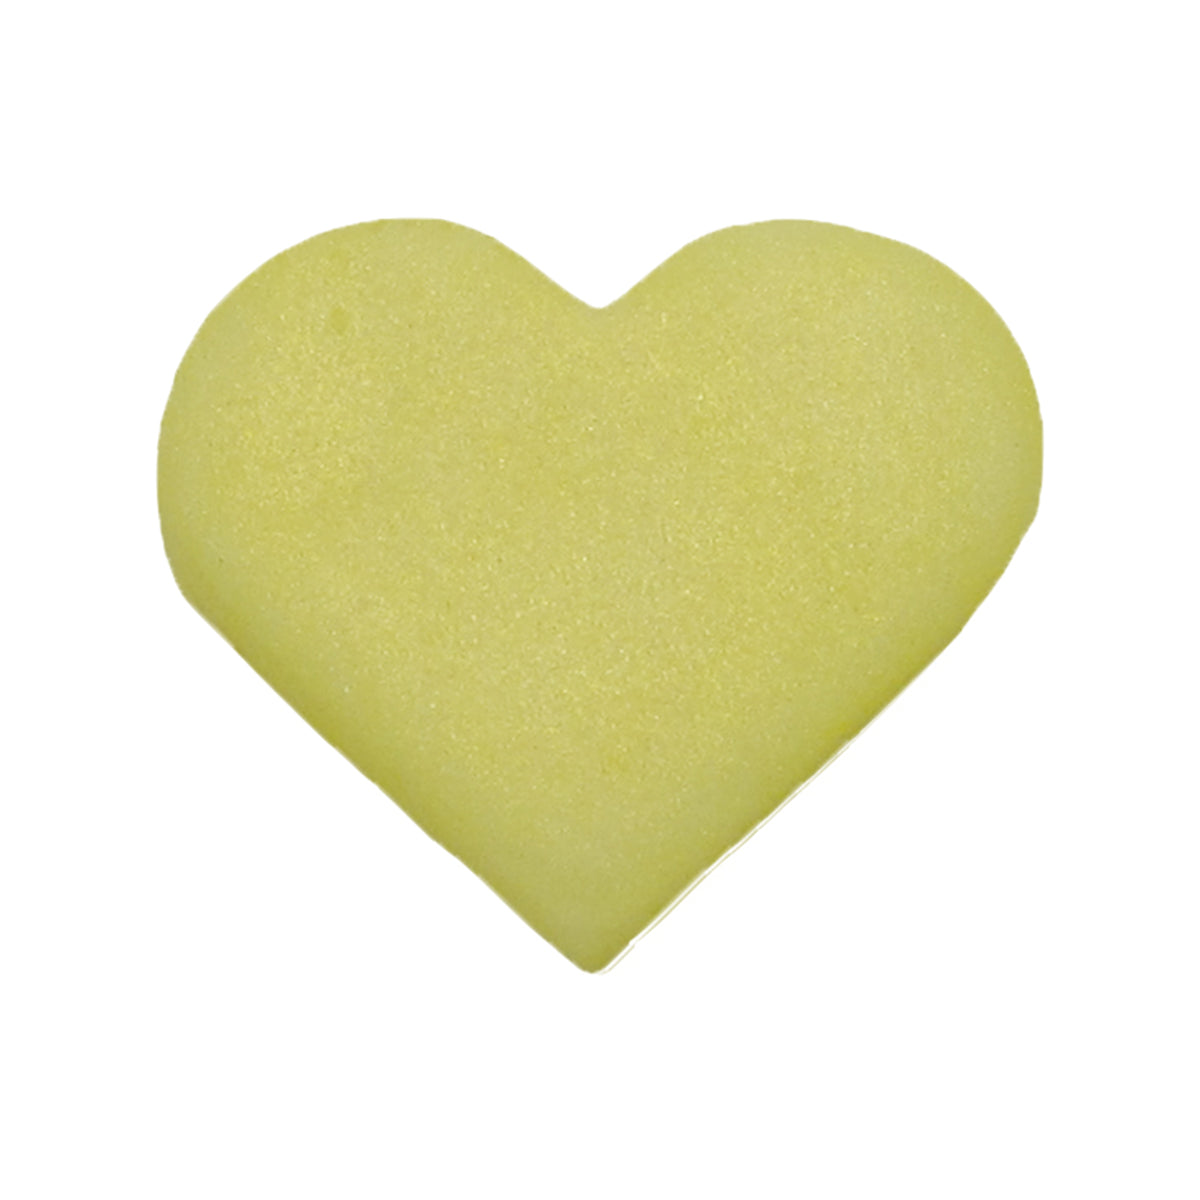 Bake CK Dust Lustr Pale Yellow 2